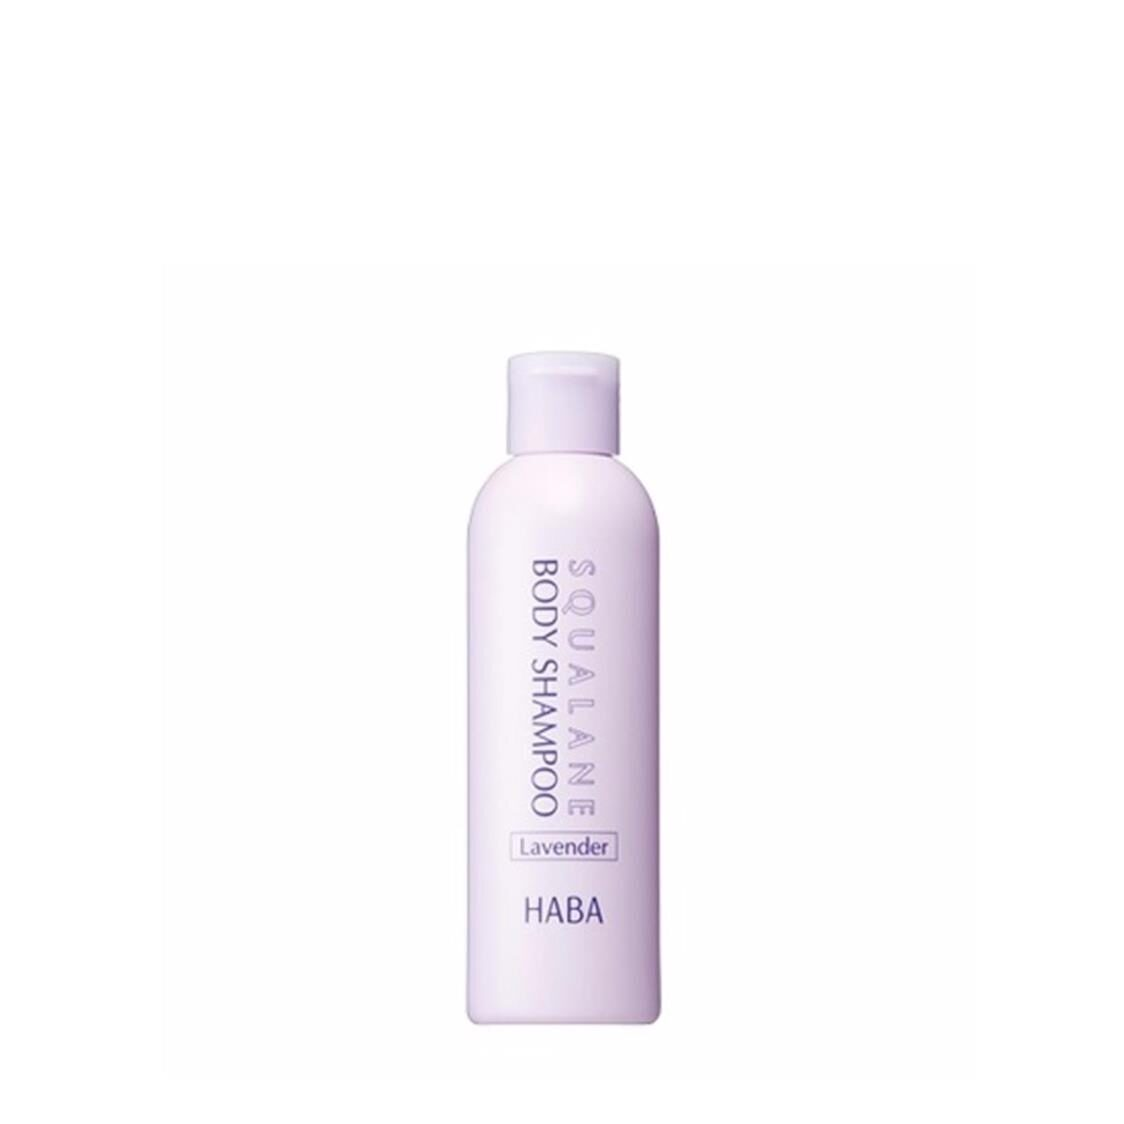 Lavender Body Shampoo 200ml